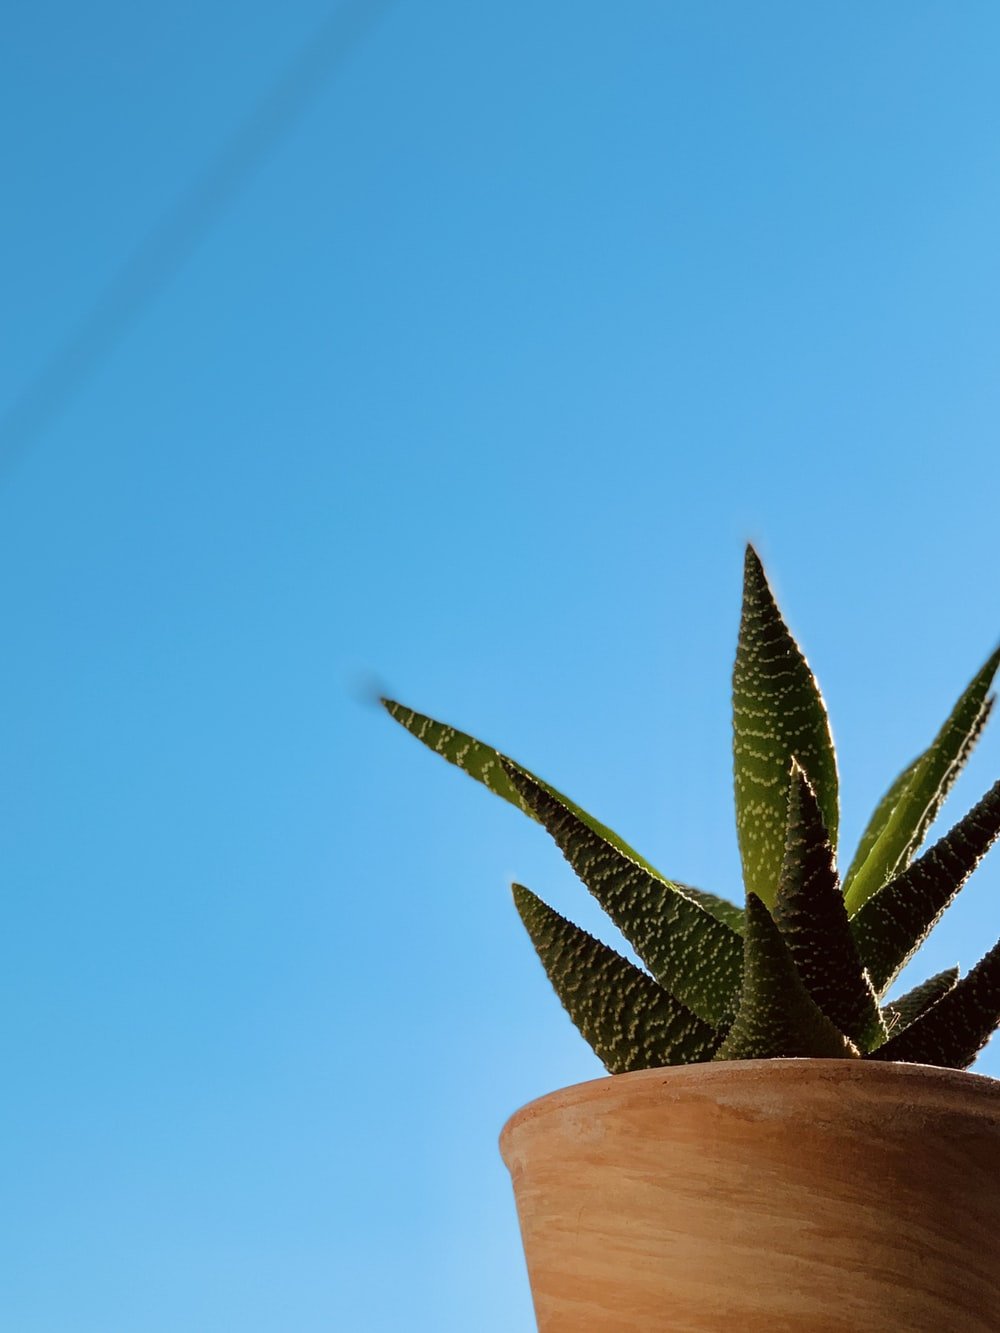 green and brown plant under blue sky during daytime